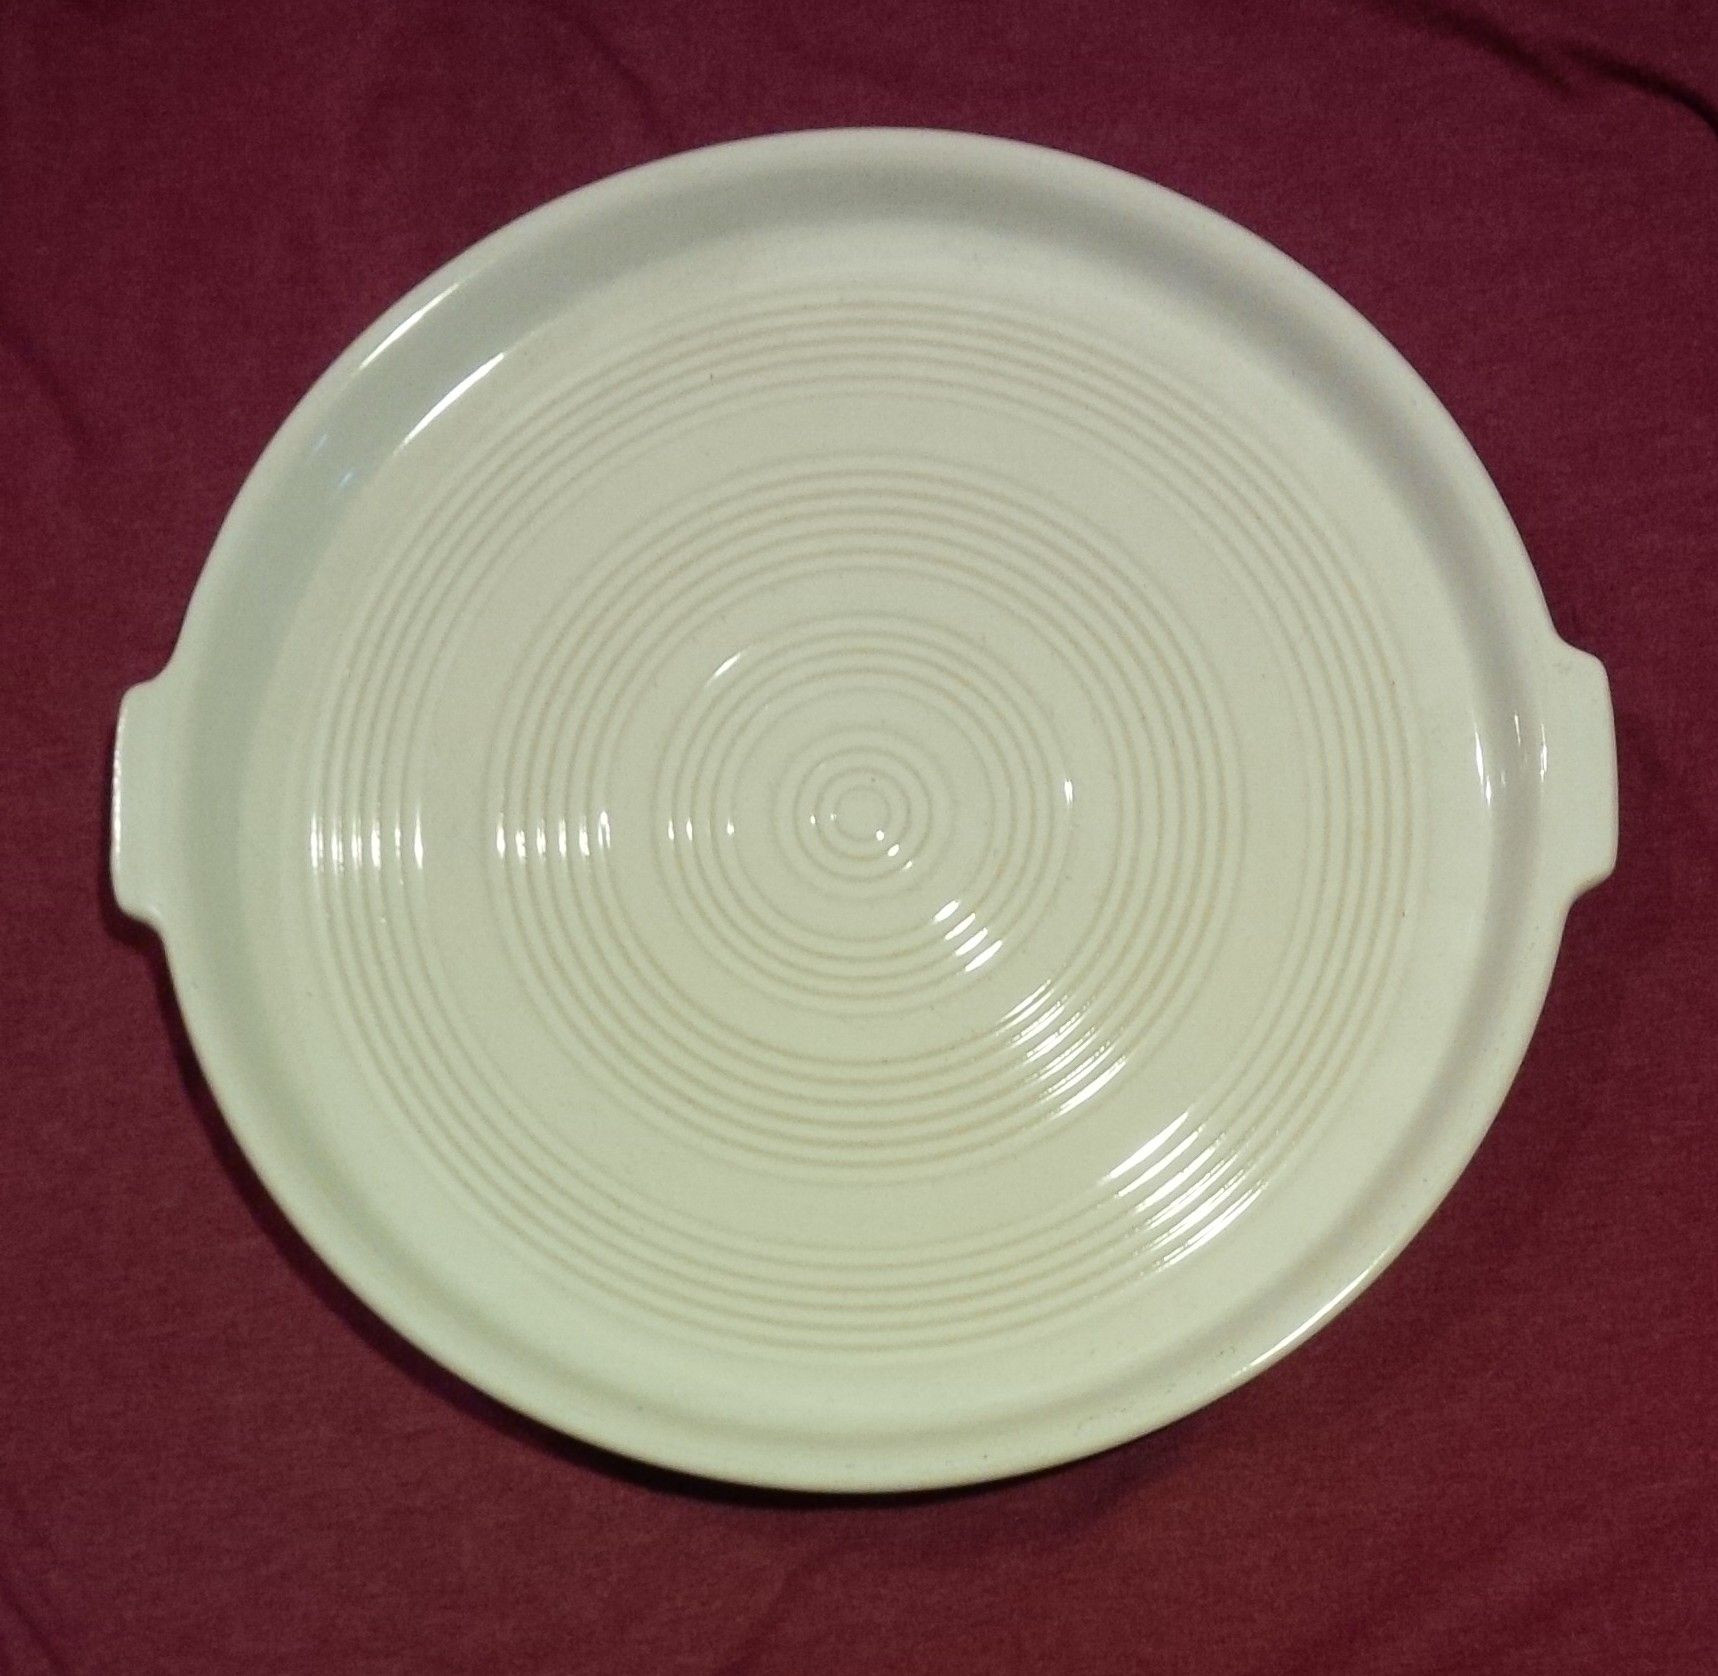 white ceramic vase target of pacific hostess ware handled target serving tray in rare gloss white for pacific hostess ware handled target serving tray in rare gloss white glaze color